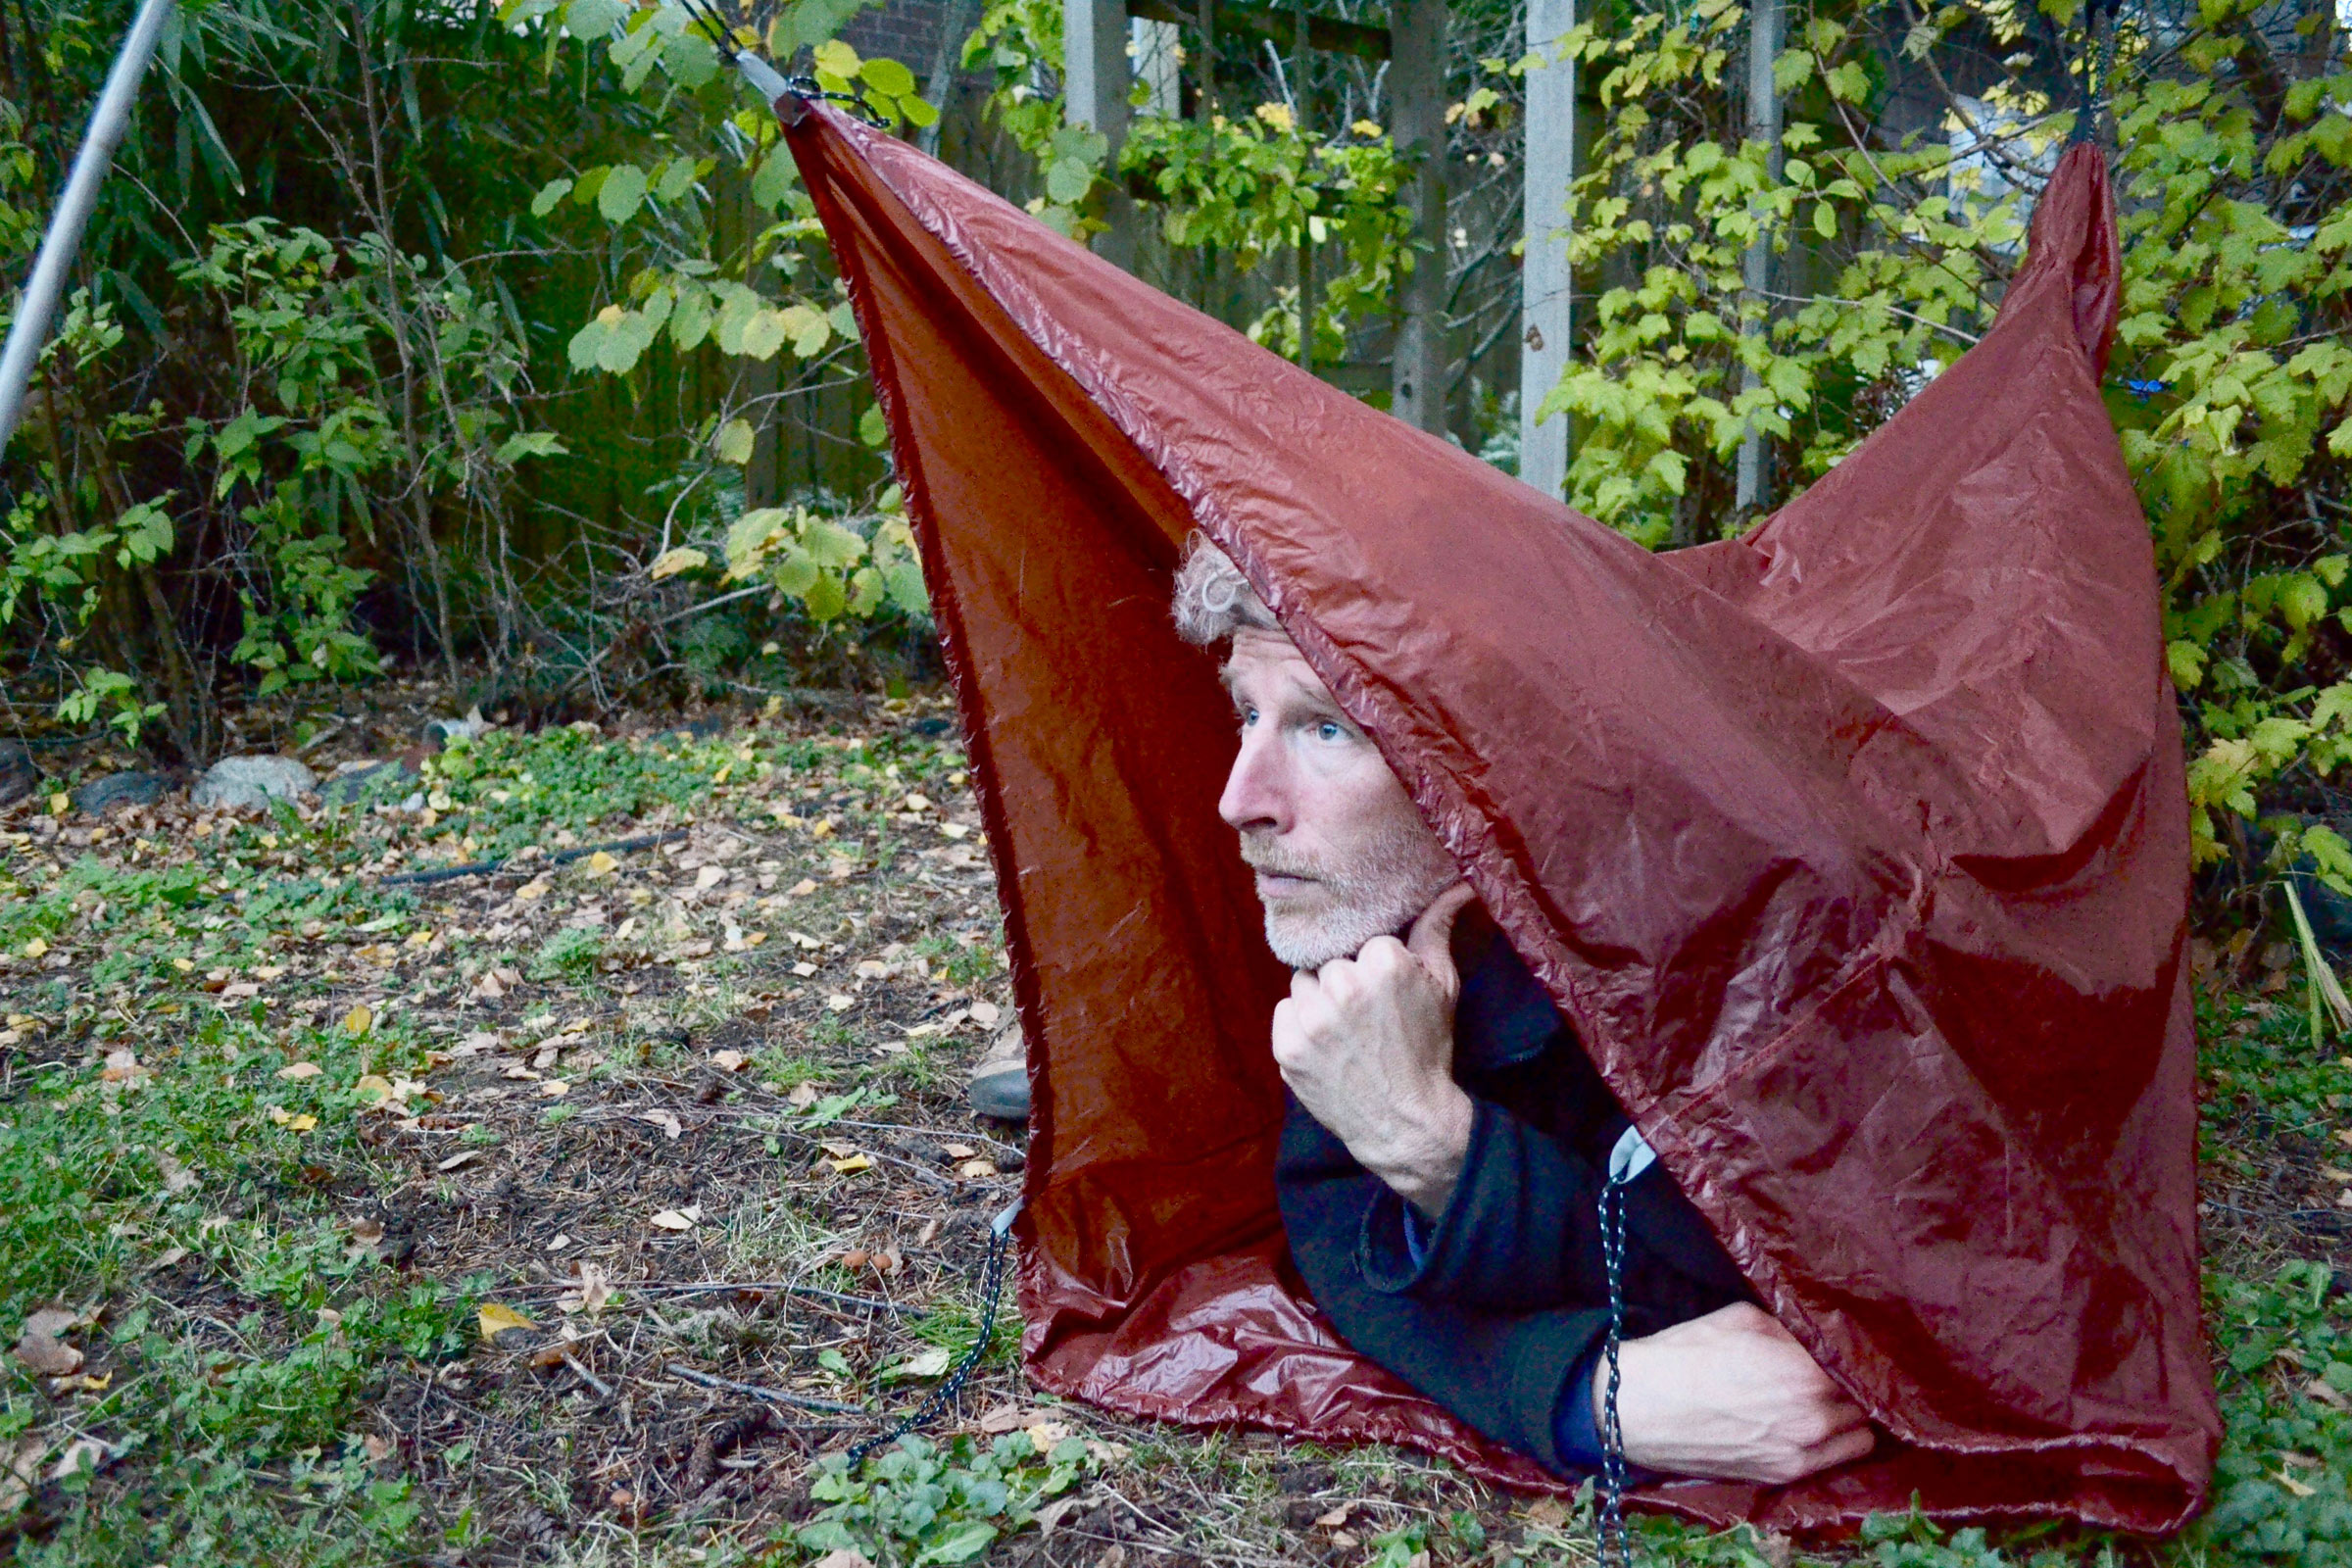 As the name suggests, the Bivibag Duo can be used for a bivouac, in tent fashion for one, a double sleeping bag for two.